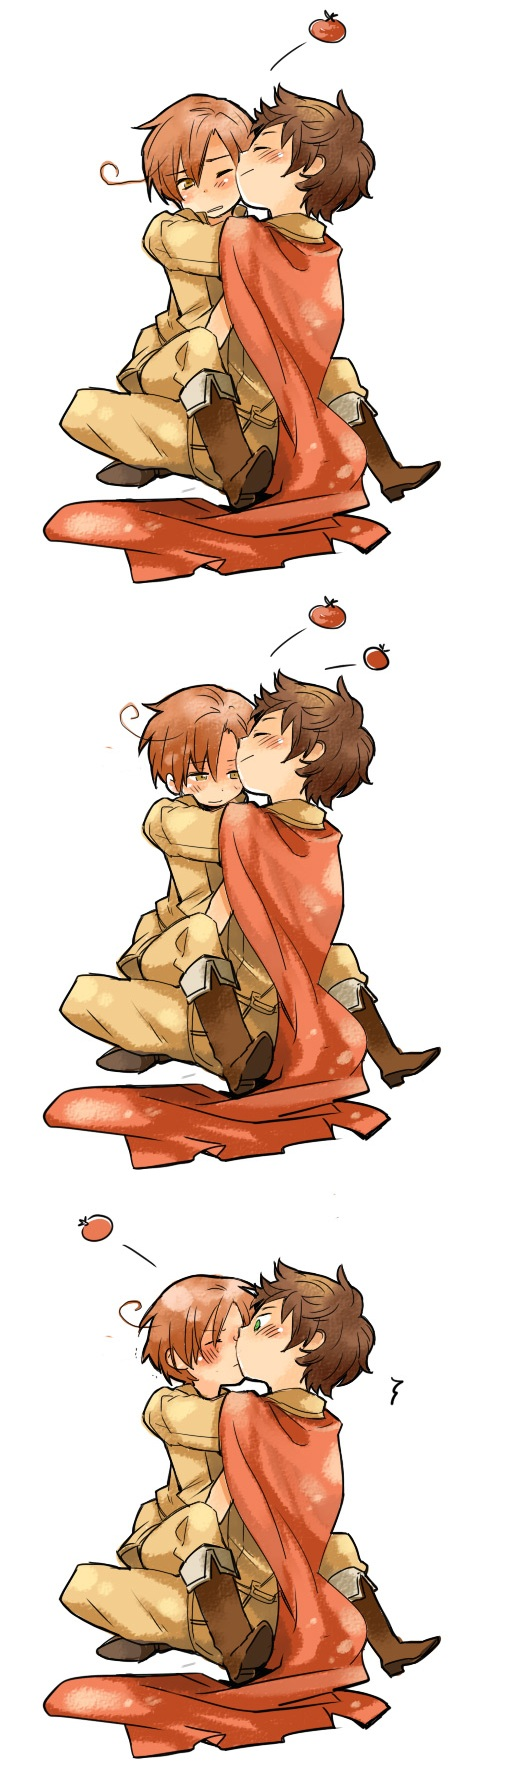 Tags: Anime, Jusc0, Axis Powers: Hetalia, South Italy, Spain, Comic, Spamano, Mediterranean Countries